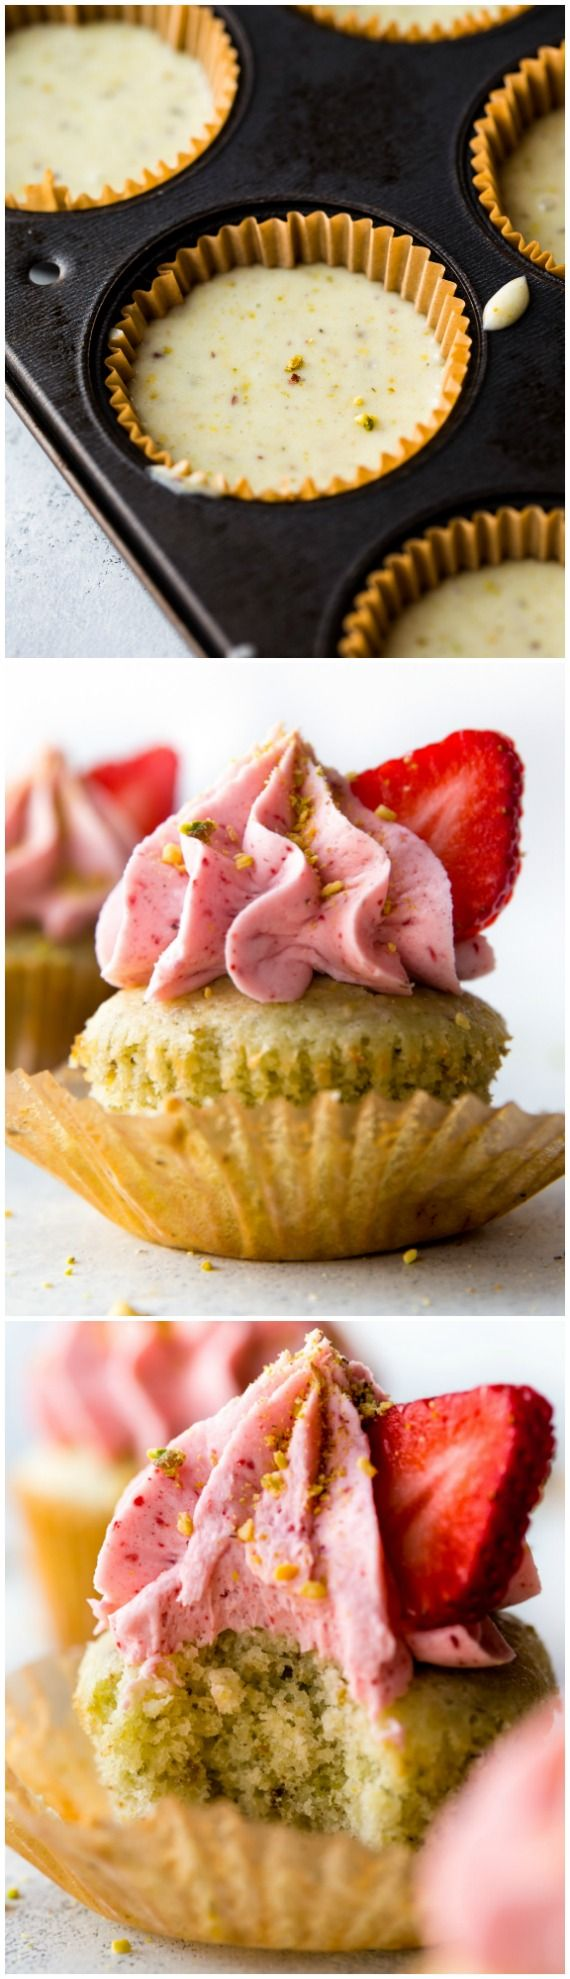 Soft, fluffy, and sweet pistachio almond cupcakes with lots of creamy strawberry frosting from scratch!! Recipe on sallysbakingaddiction.com